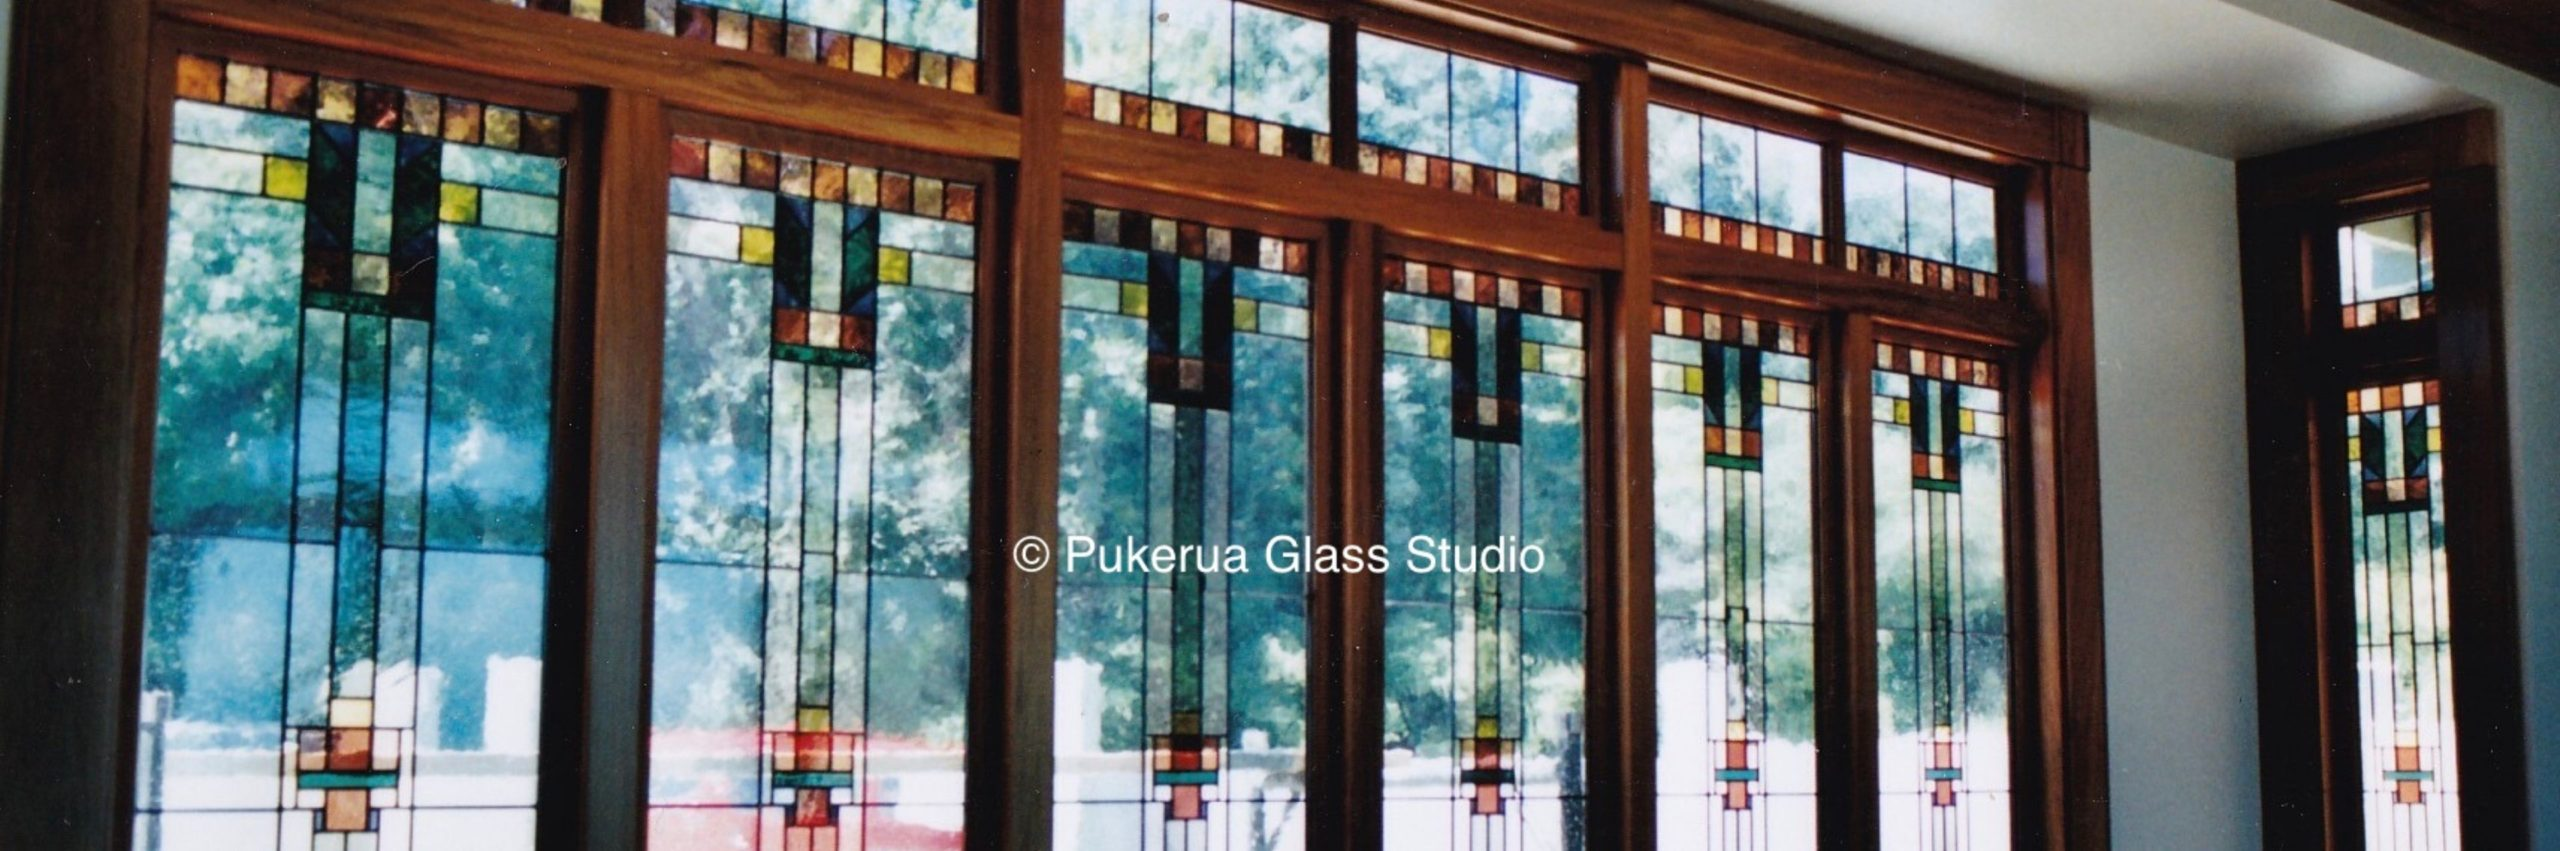 Original Stained Glass Designs